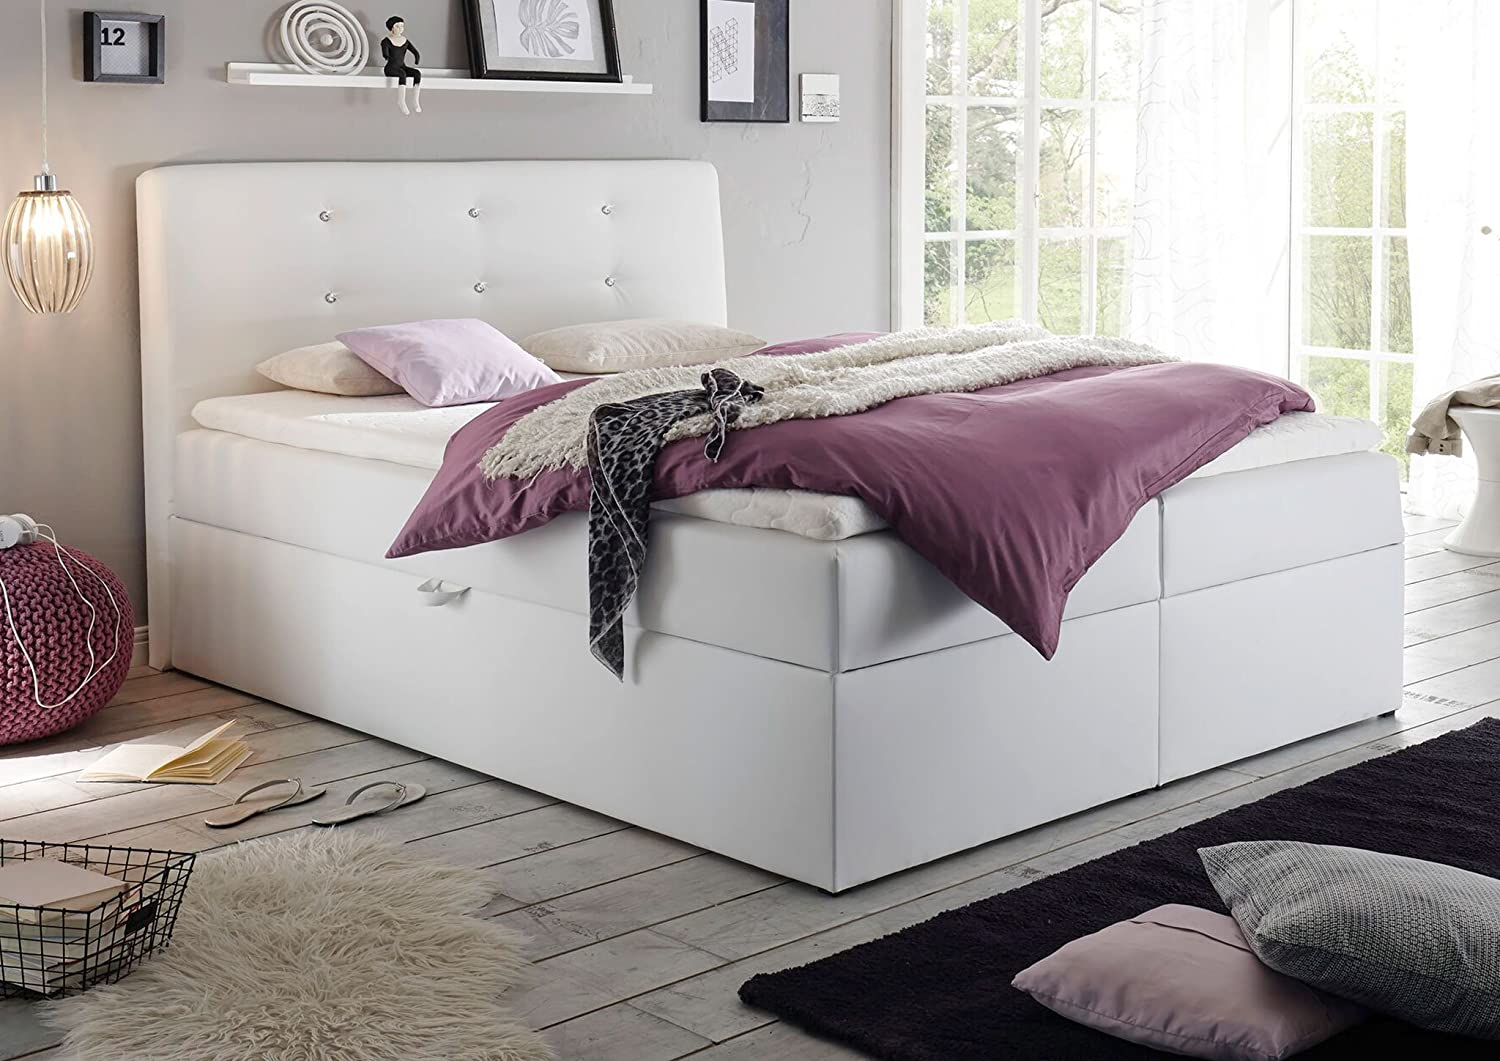 jugendbett wei 140x200 beautiful bett bettgestell vikingii x holzbett kiefer massiv weiss. Black Bedroom Furniture Sets. Home Design Ideas